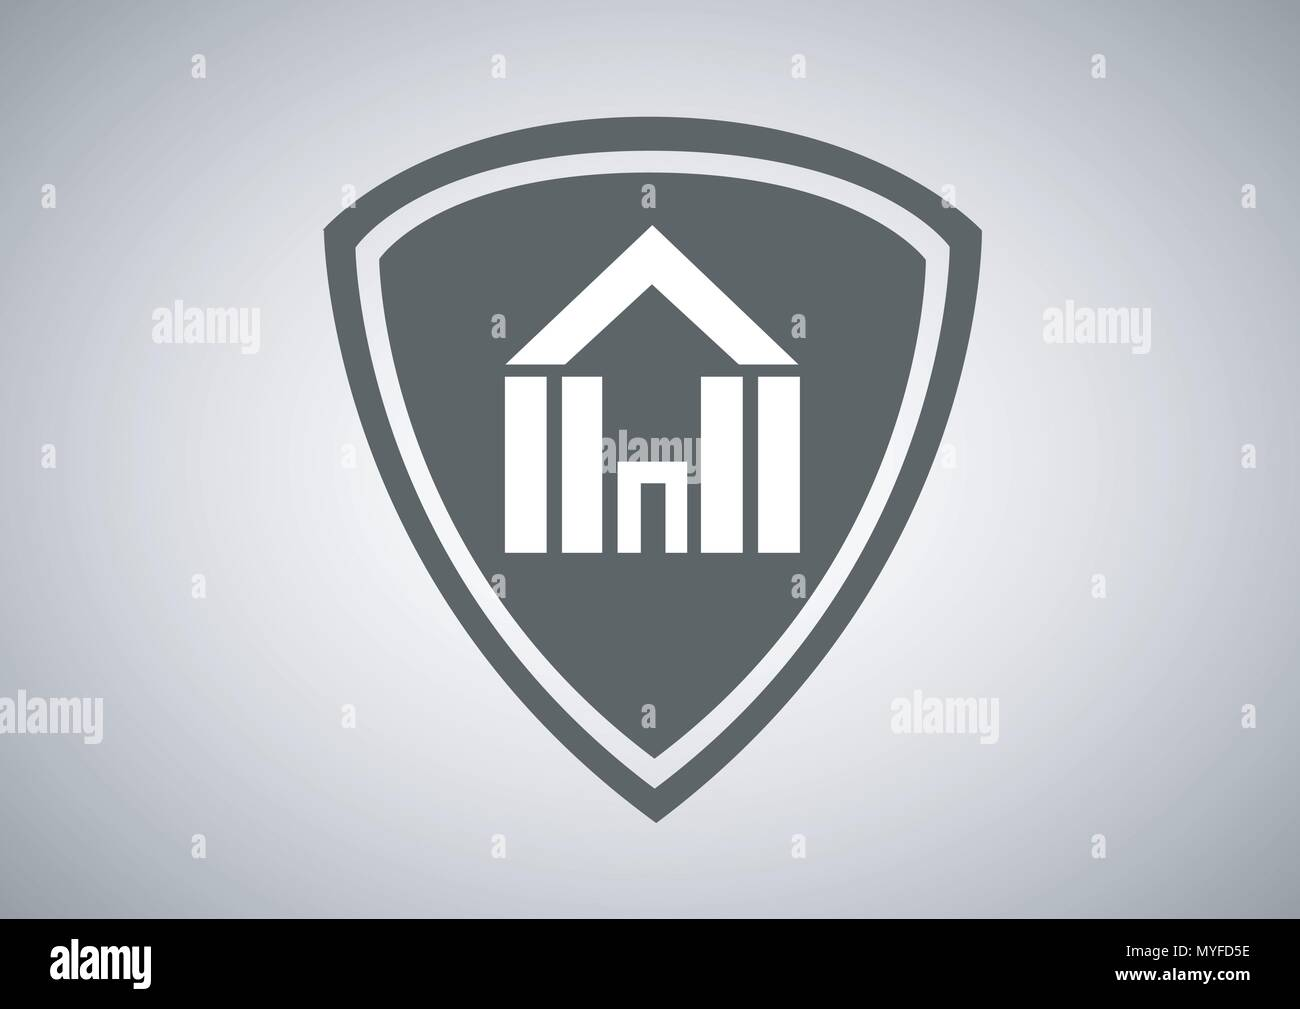 vector design of real estate logo - Stock Vector